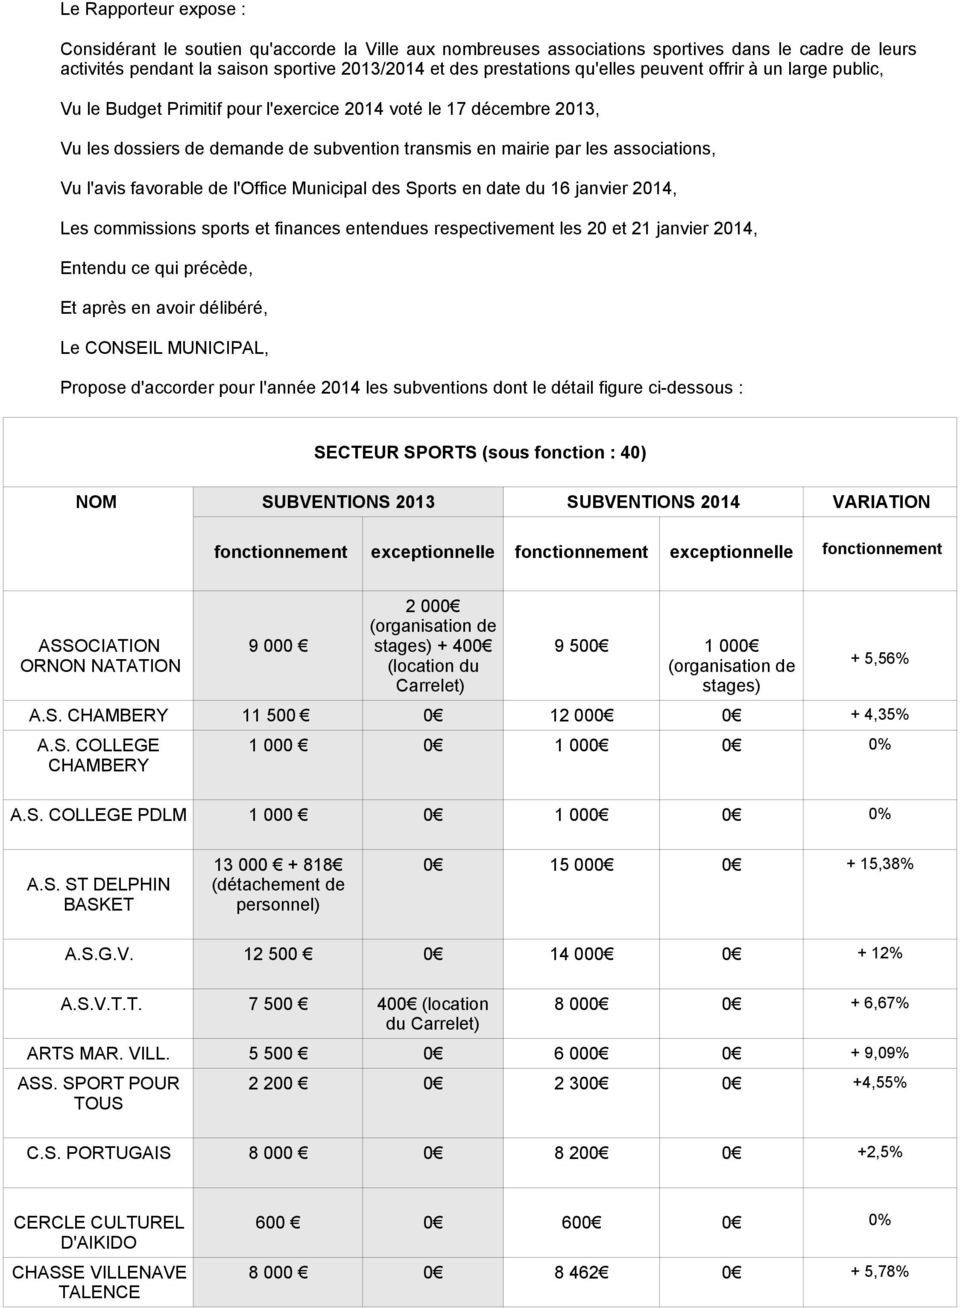 l'avis favorable de l'office Municipal des Sports en date du 16 janvier 2014, Les commissions sports et finances entendues respectivement les 20 et 21 janvier 2014, Le CONSEIL MUNICIPAL, Propose